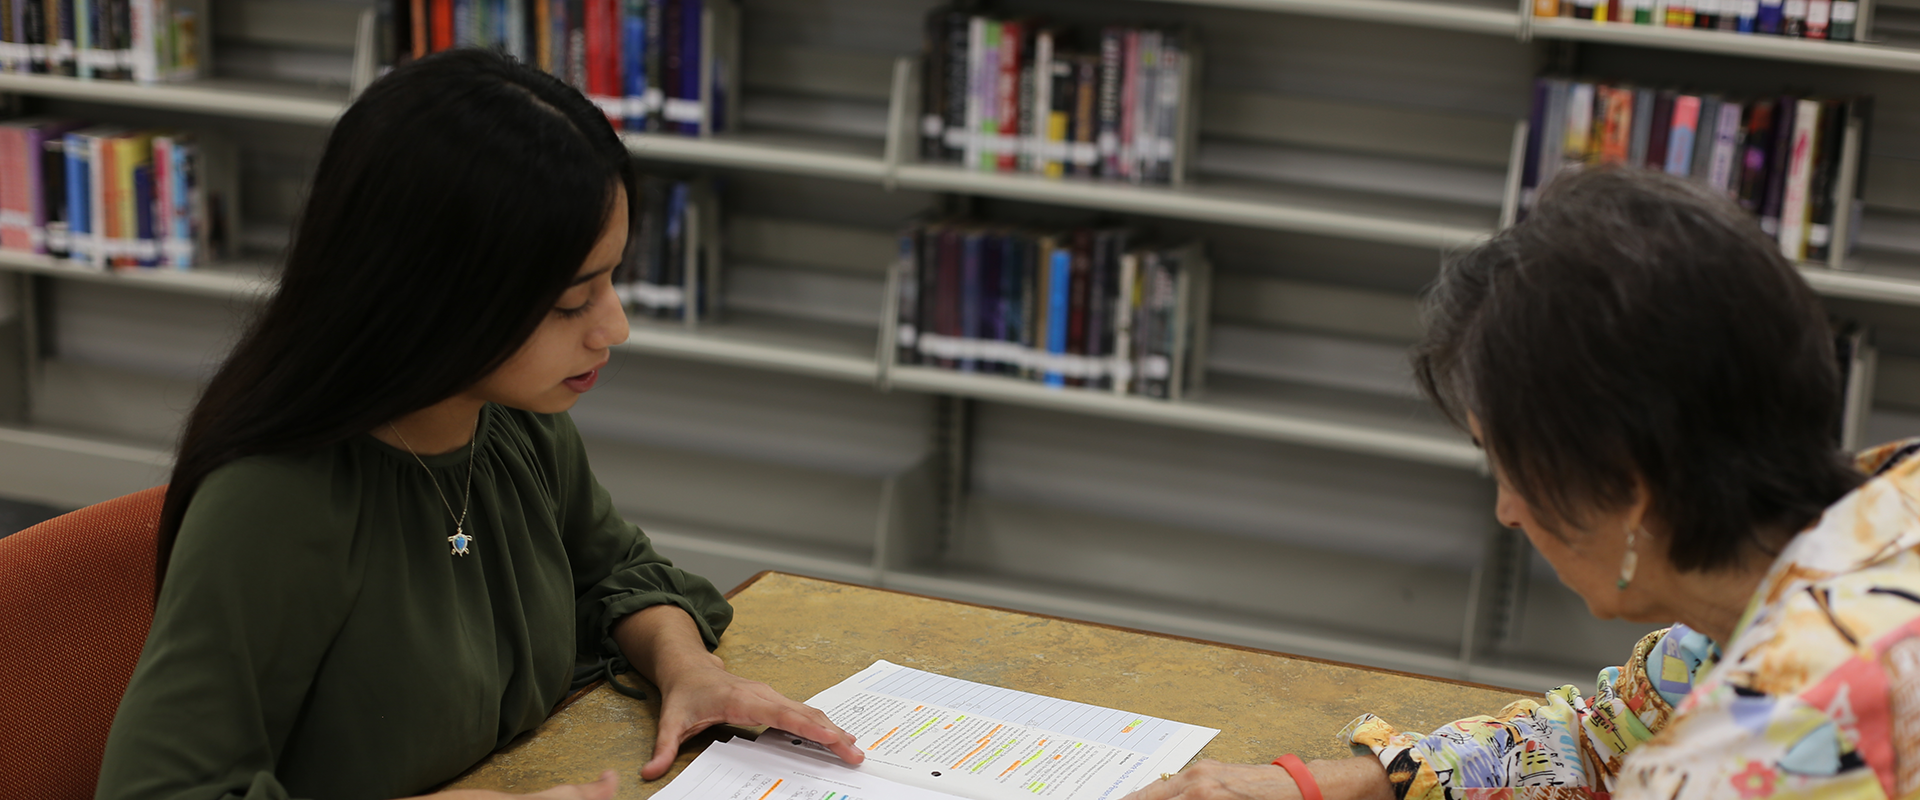 Take Stock in Children student and mentor studying in a library